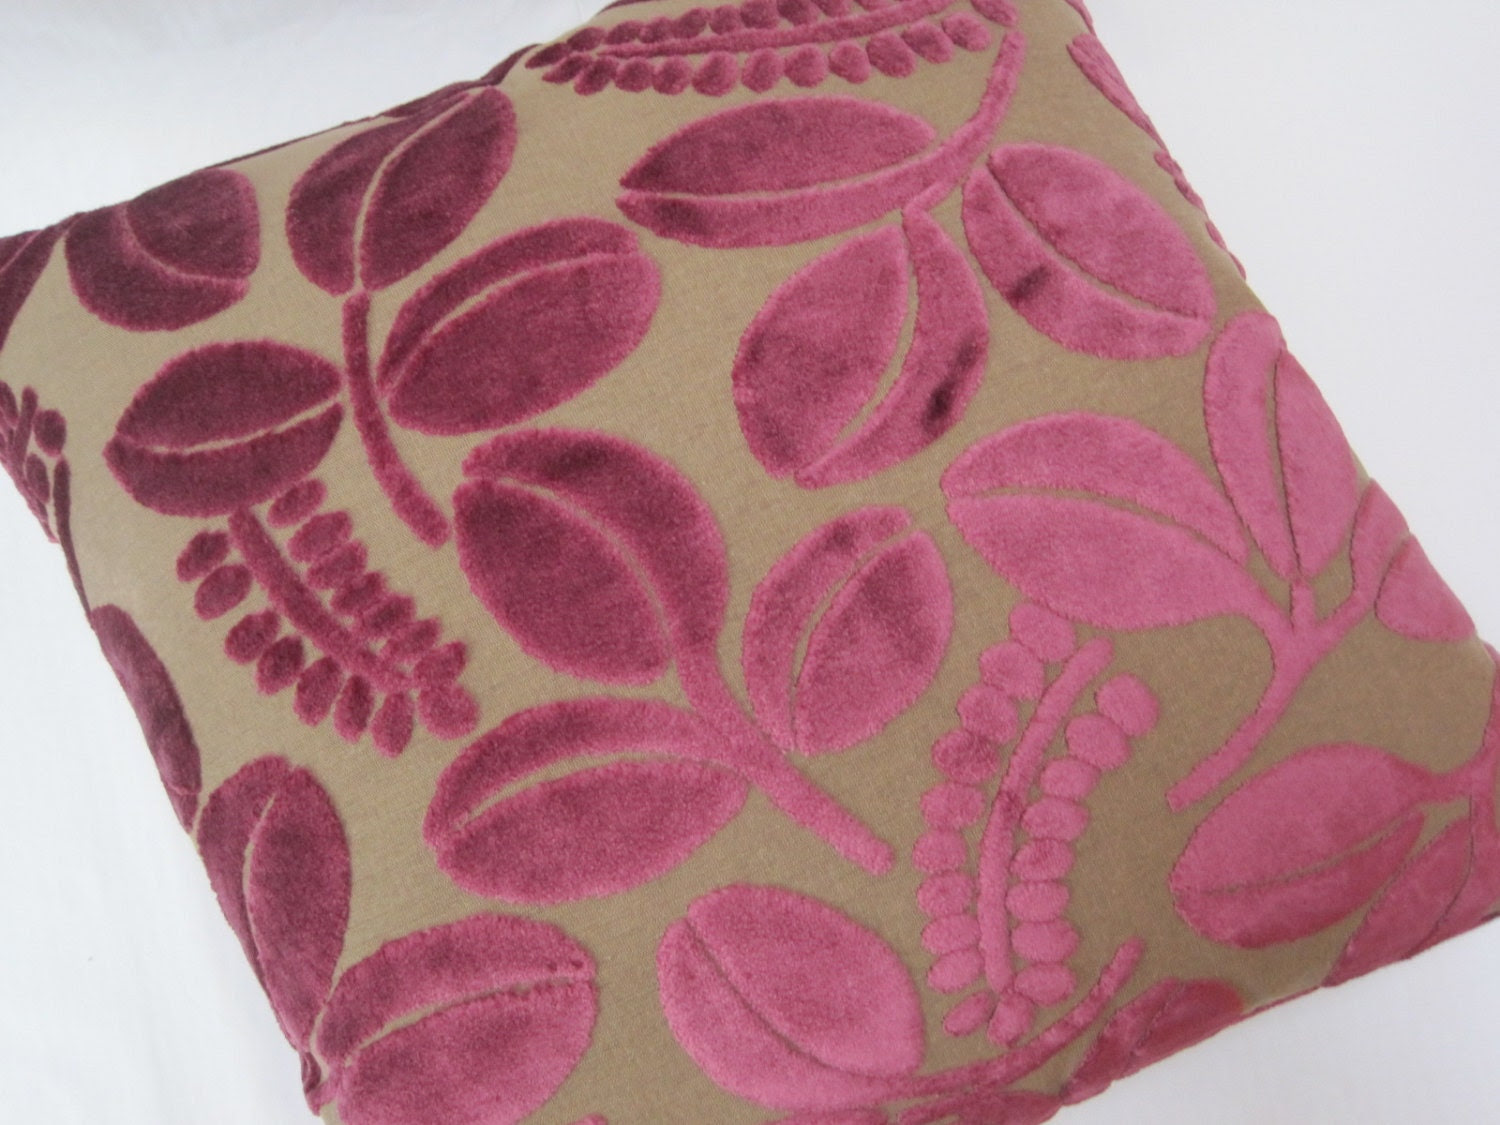 Popular items for square cushion cover on Etsy